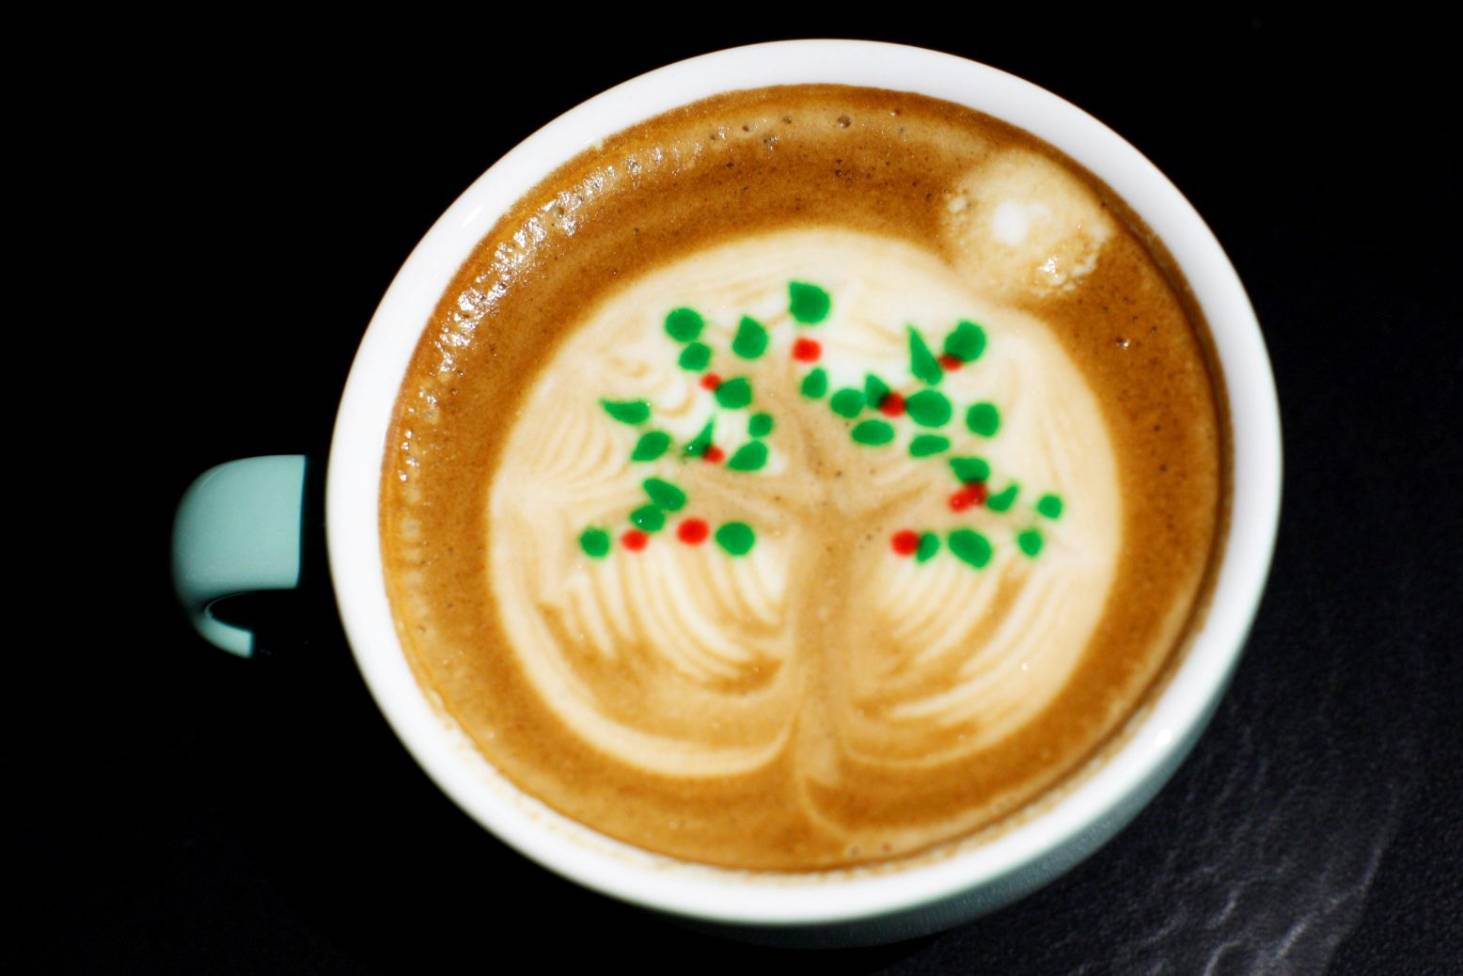 7a5c5b136 Never a daily grind - how our coffee obsession has changed | Stuff.co.nz